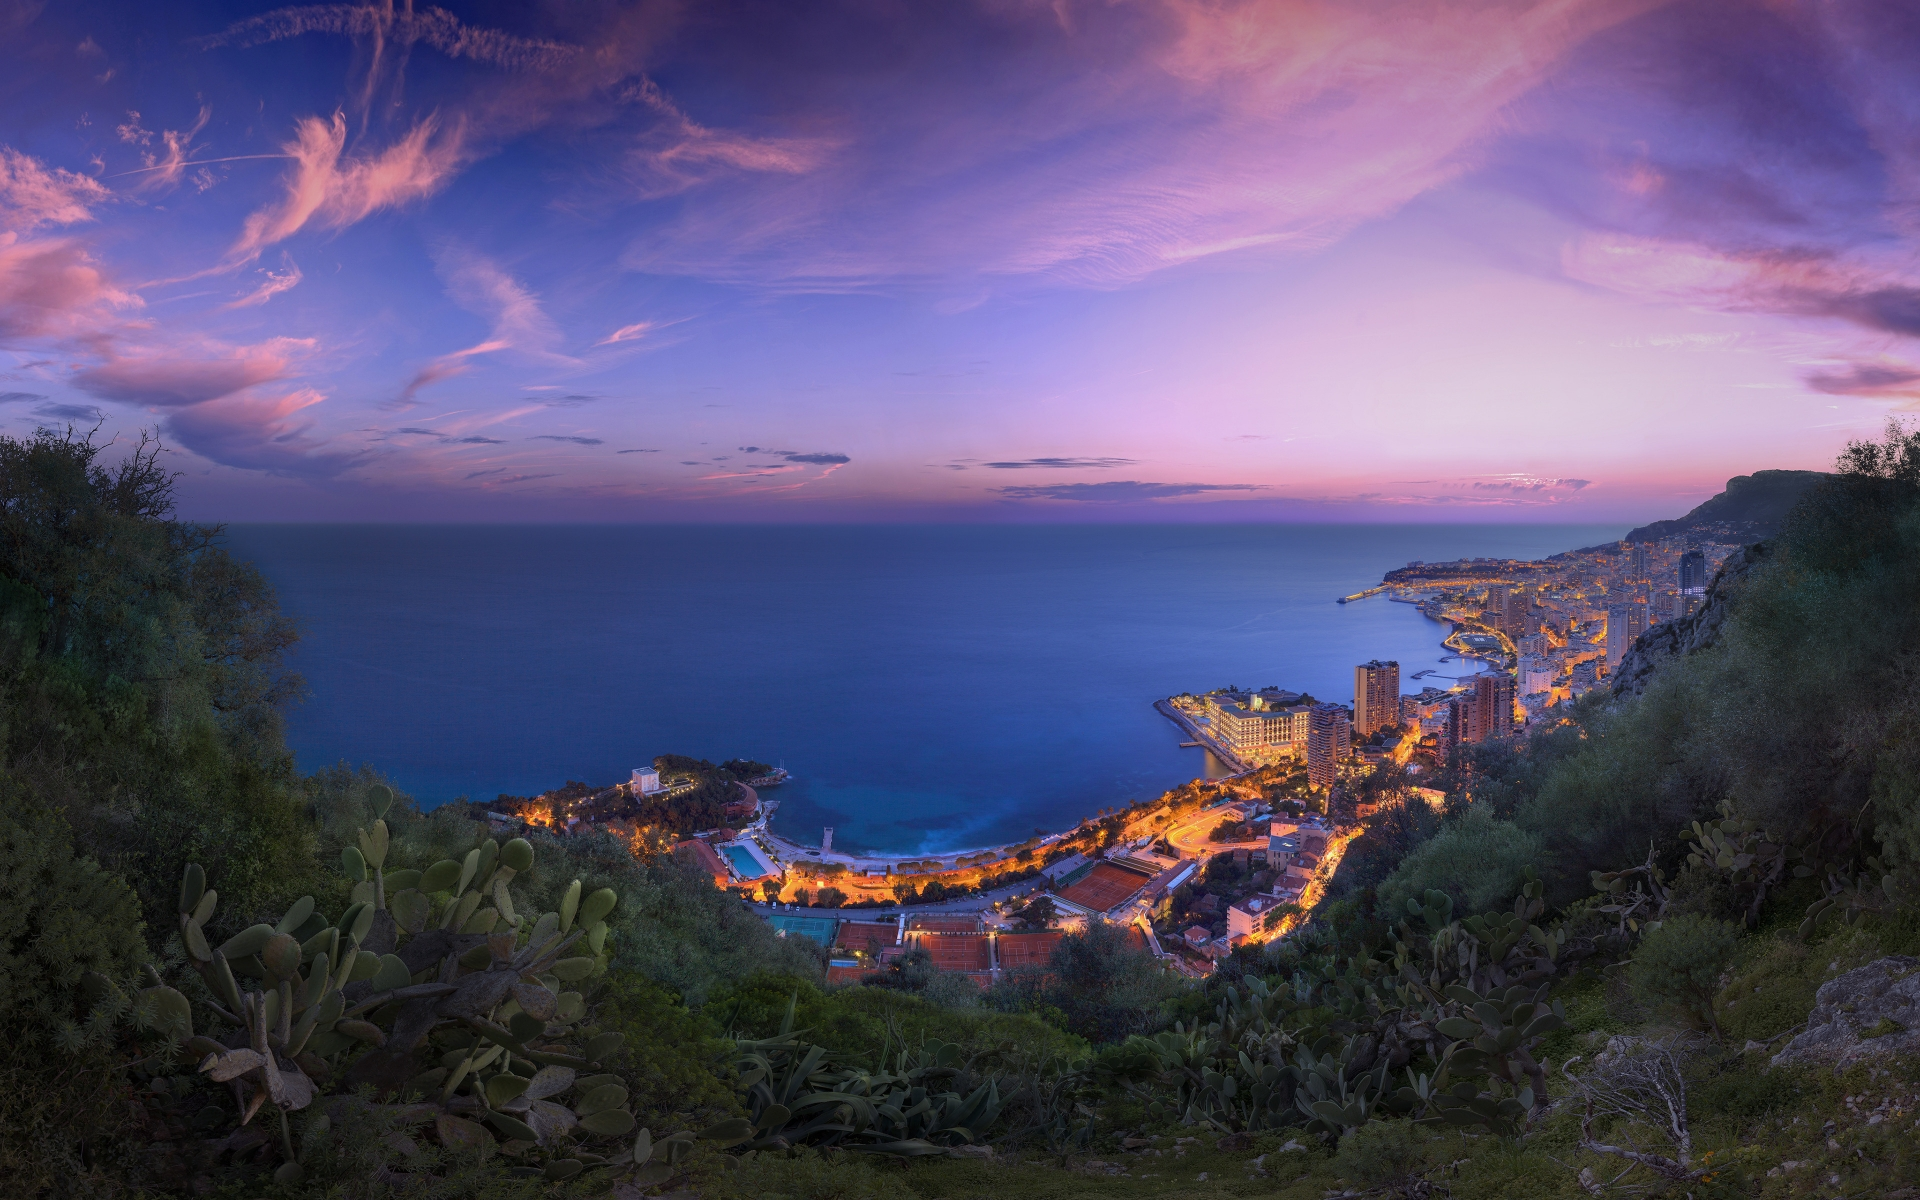 Monaco Winter Clouds Panorama for 1920 x 1200 widescreen resolution